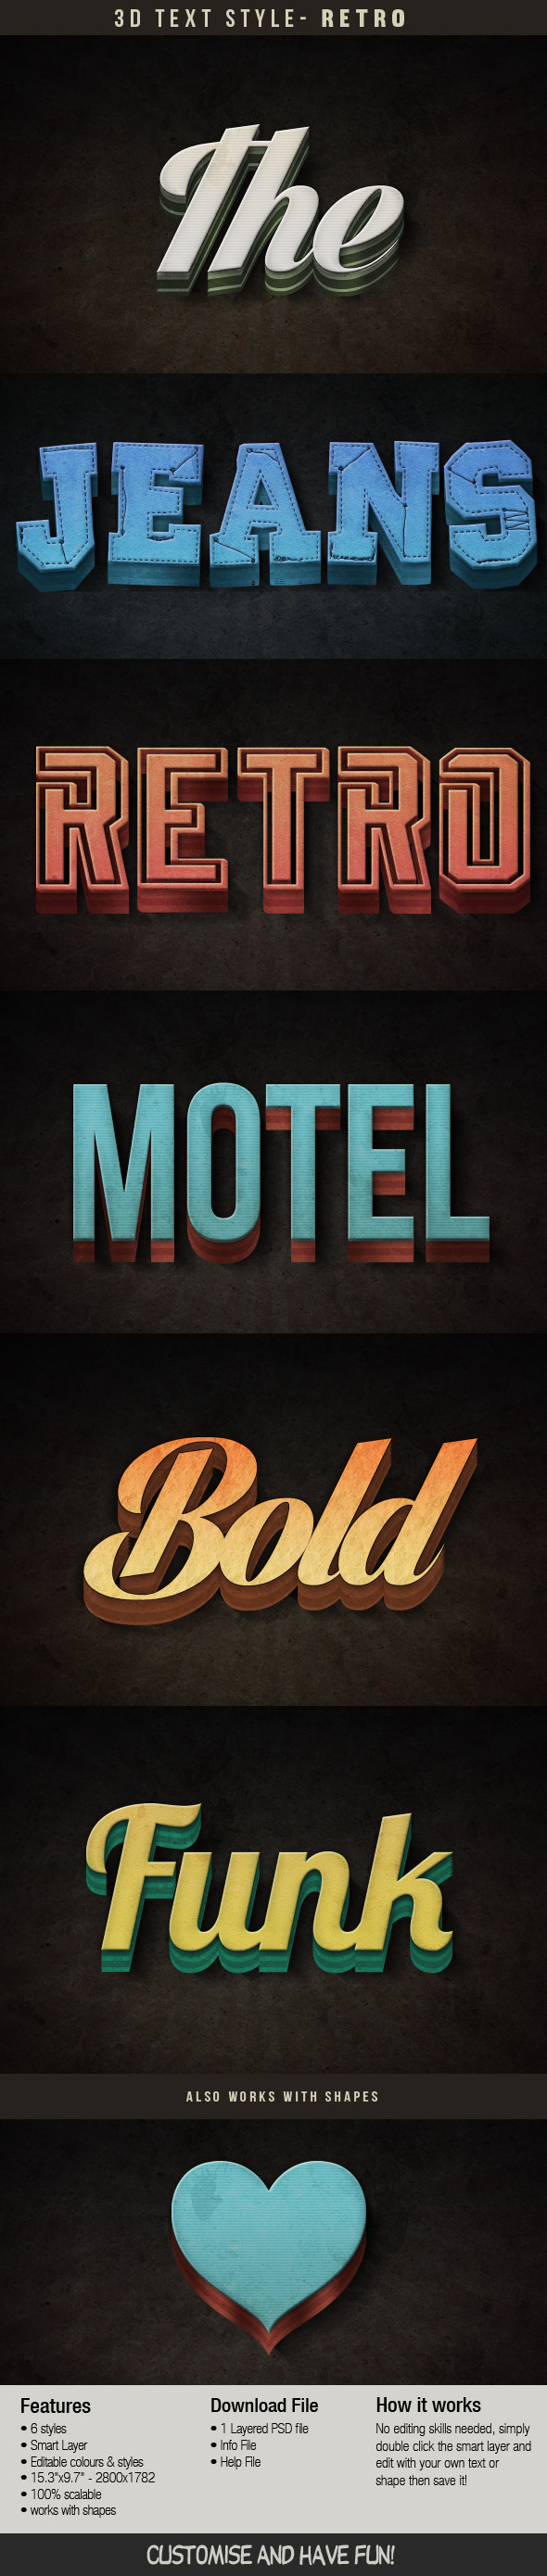 Retro 3D Text Effect - Photoshop Add-ons